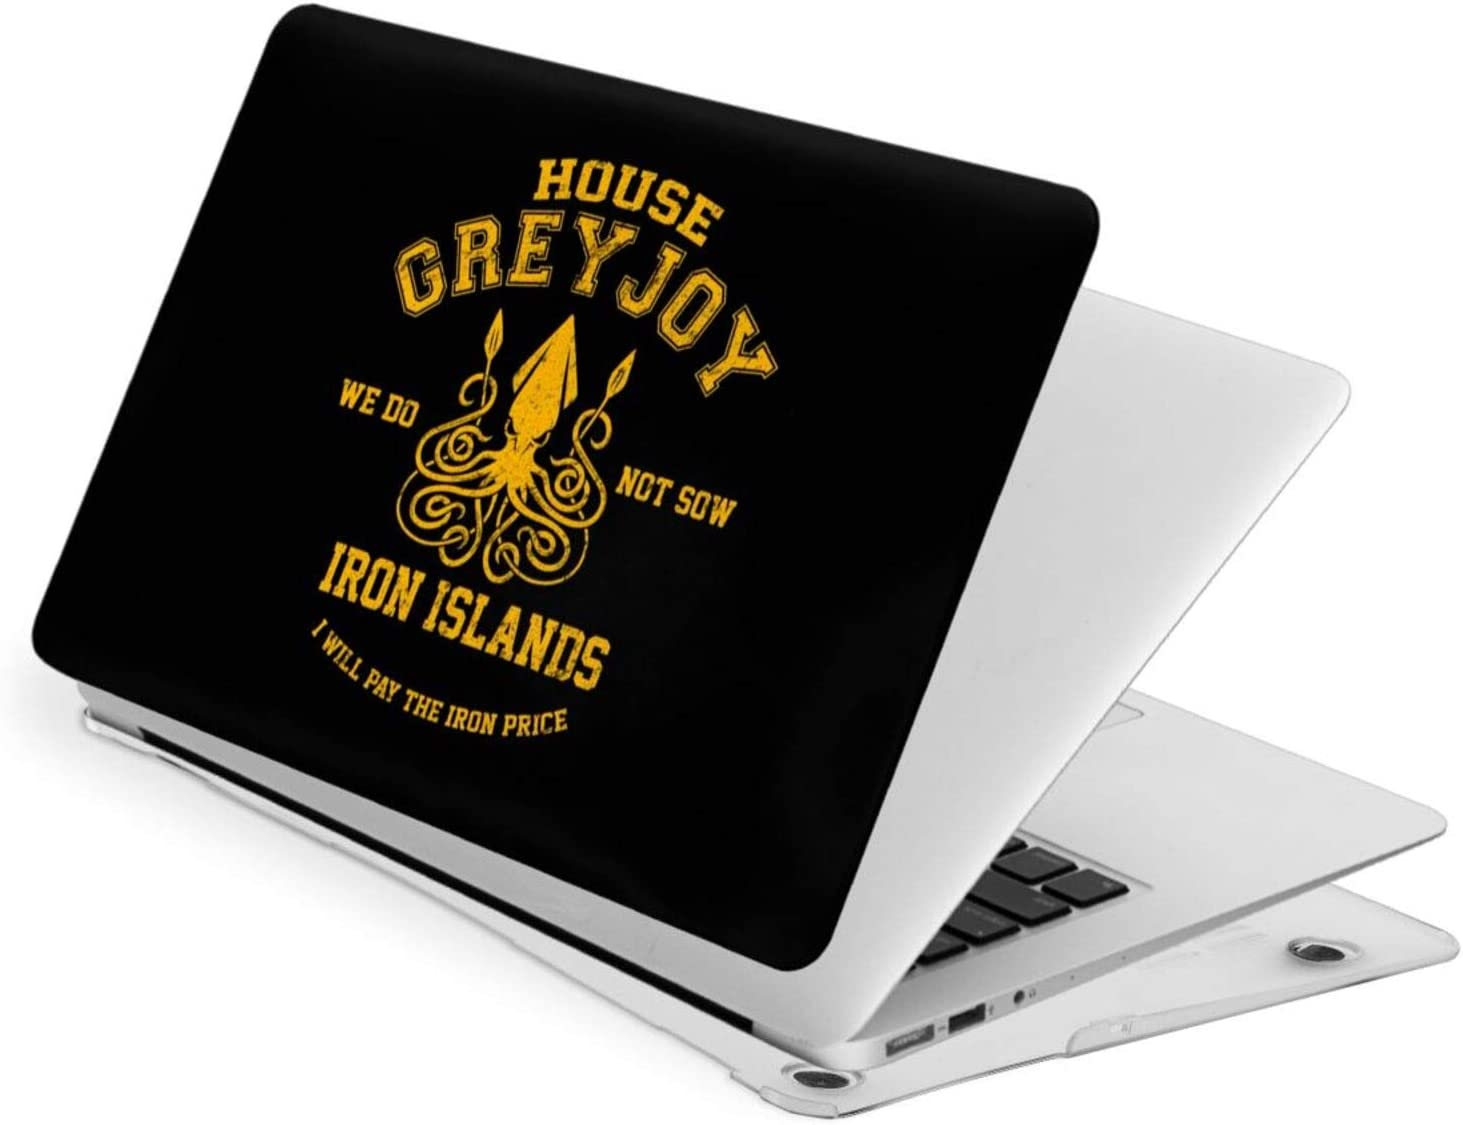 JHJHJ Game of Thrones-House Greyjoy Laptop Case Fornew Air13 Hard Case Shell Cover + A Keyboard Swipe The Quality of A Material is Frivolous,Good Heat Dissipation Performance